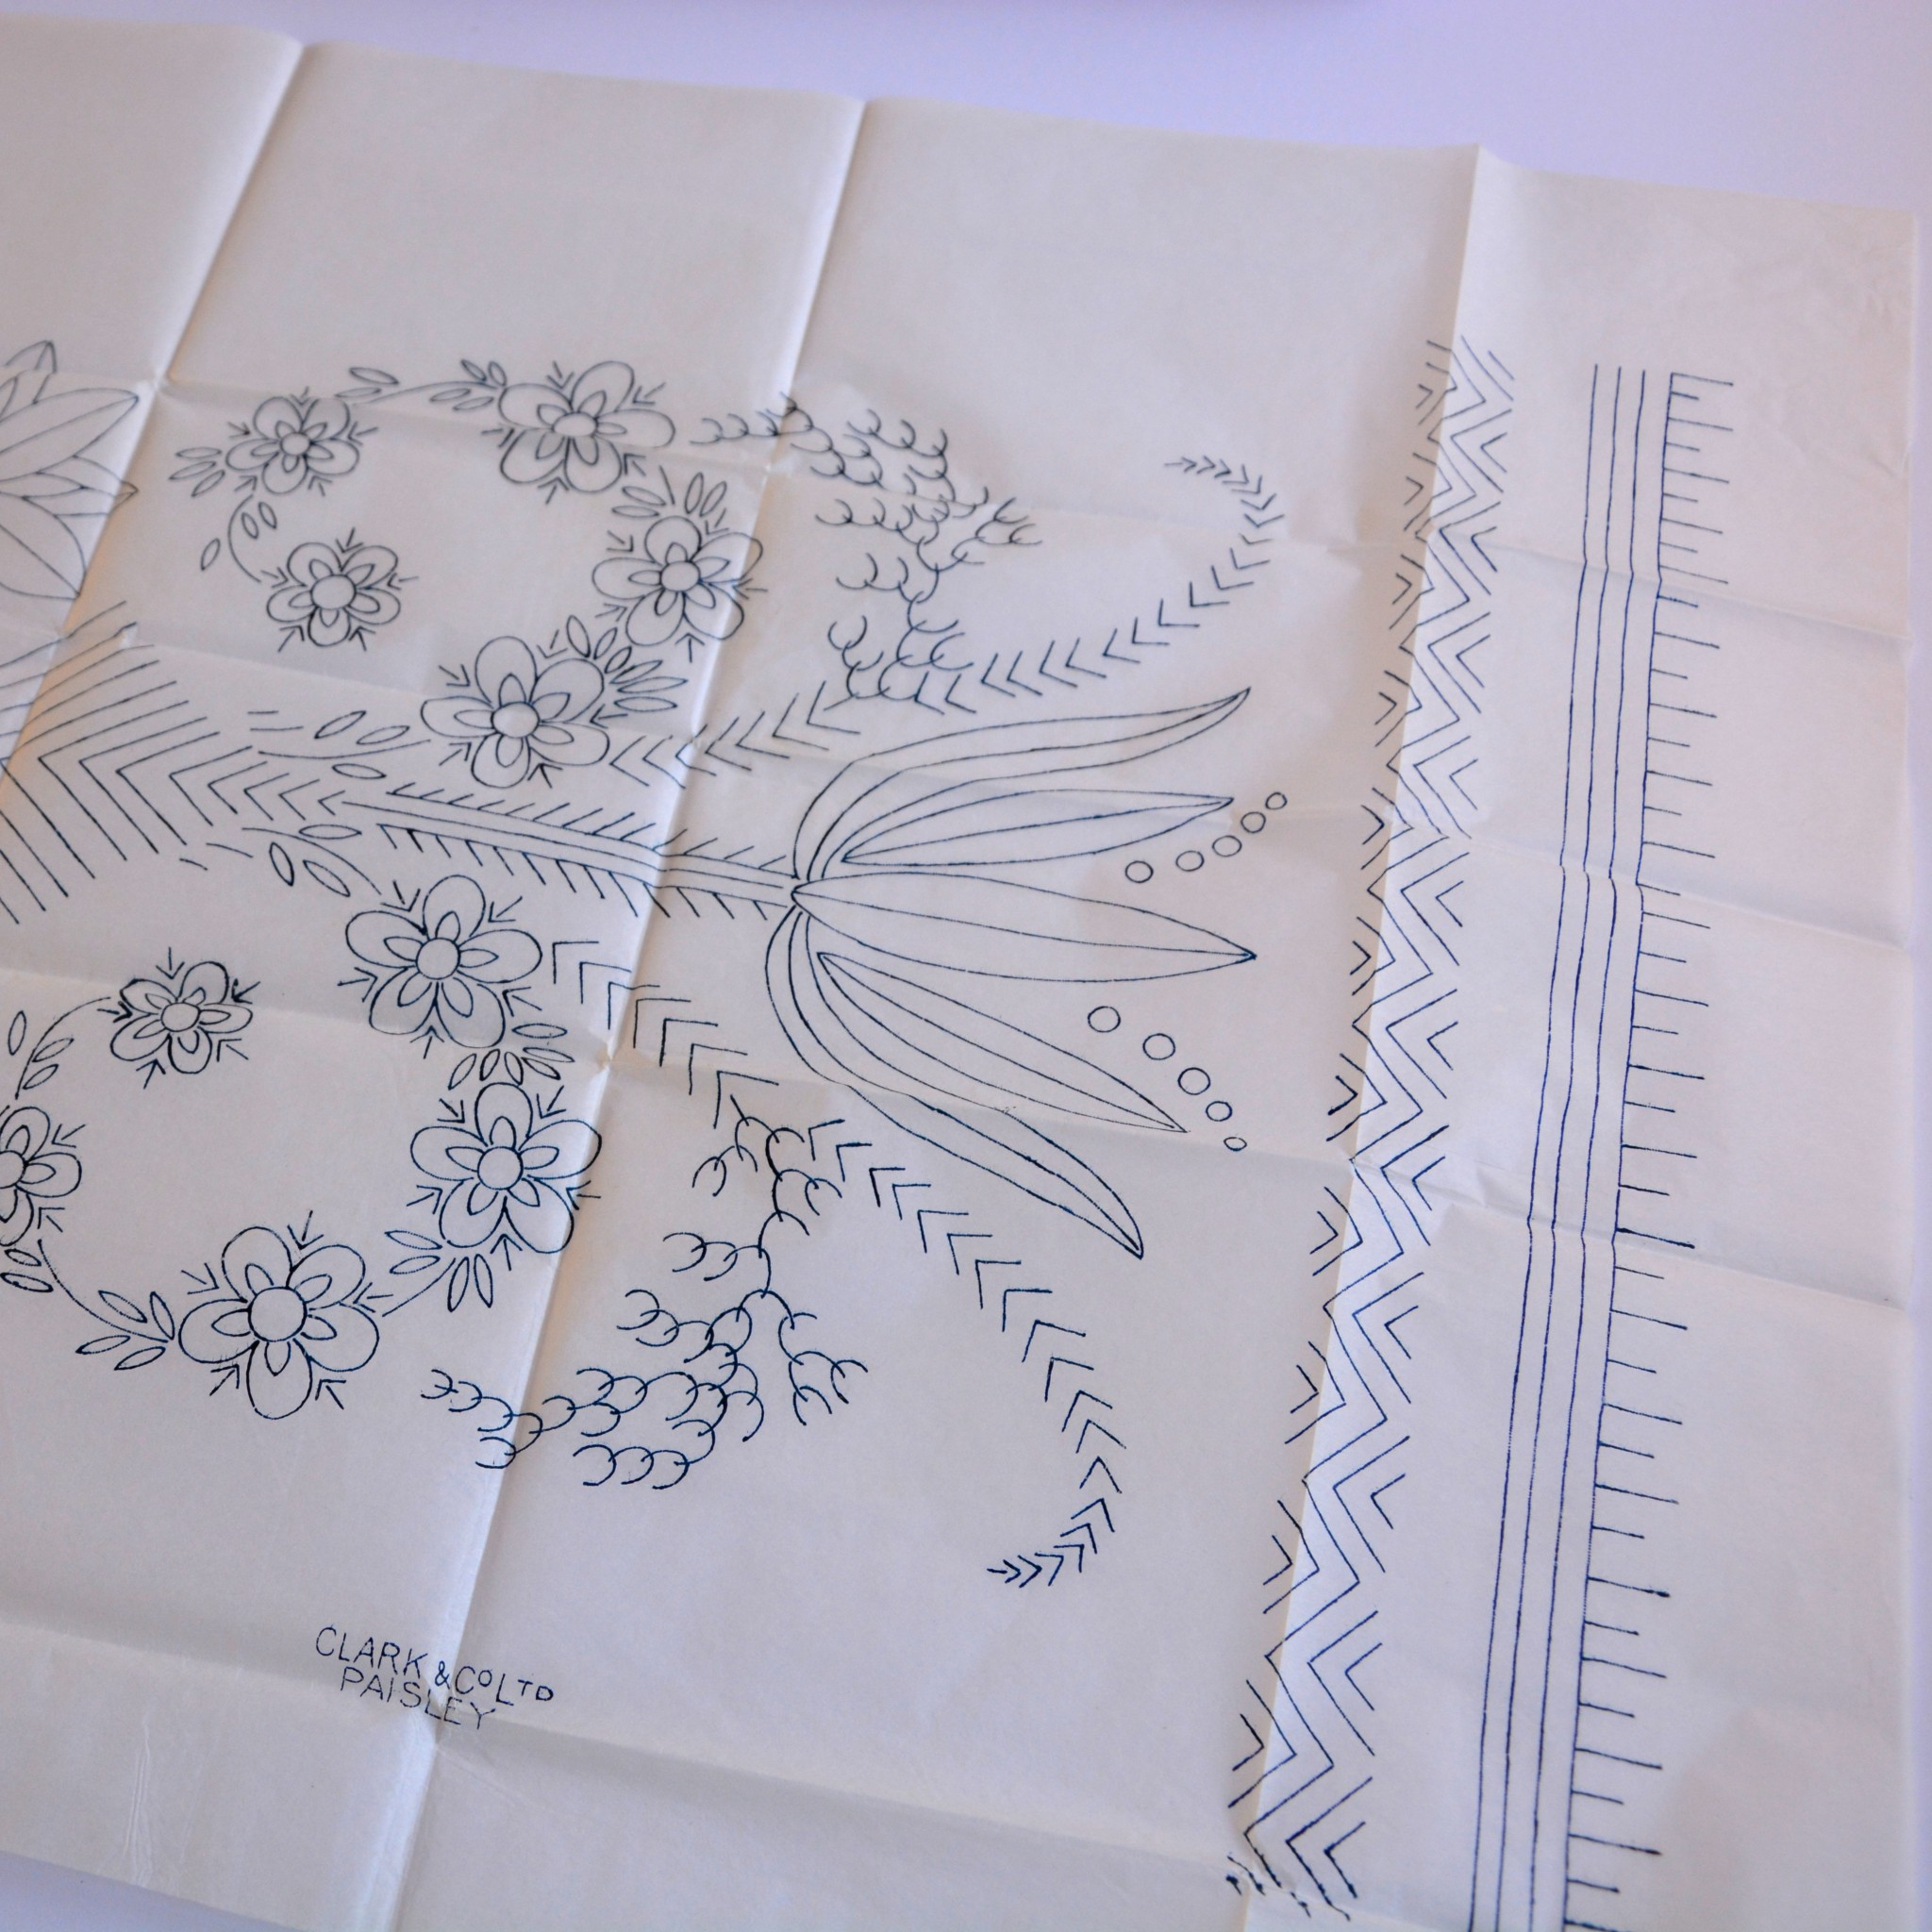 Table runner pattern detail